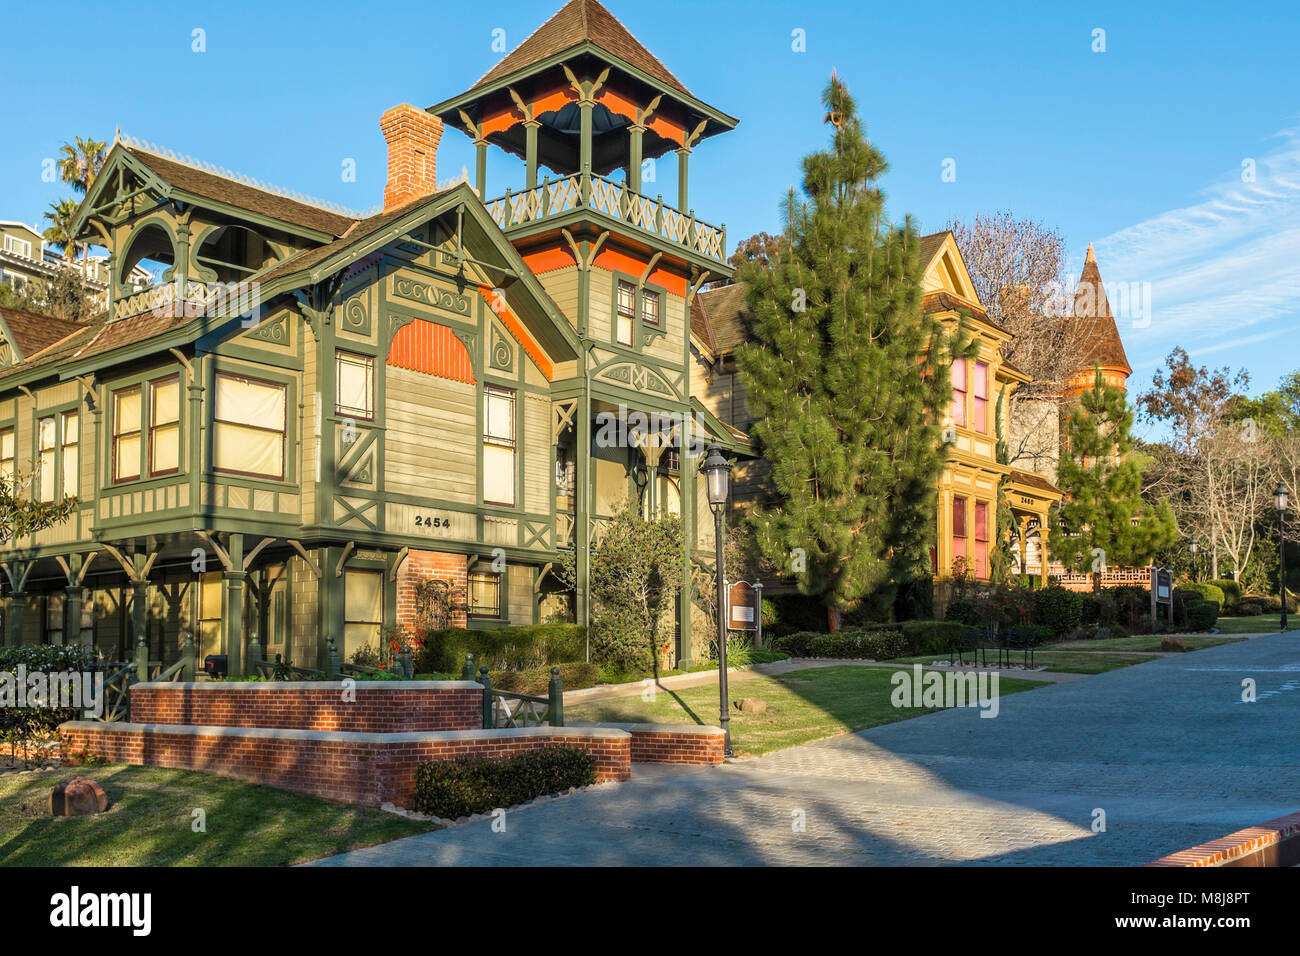 SAN DIEGO, CALIFORNIA, USA - Victorian architecture of Sherman Gilbert House in the historic Heritage County Park - Stock Image